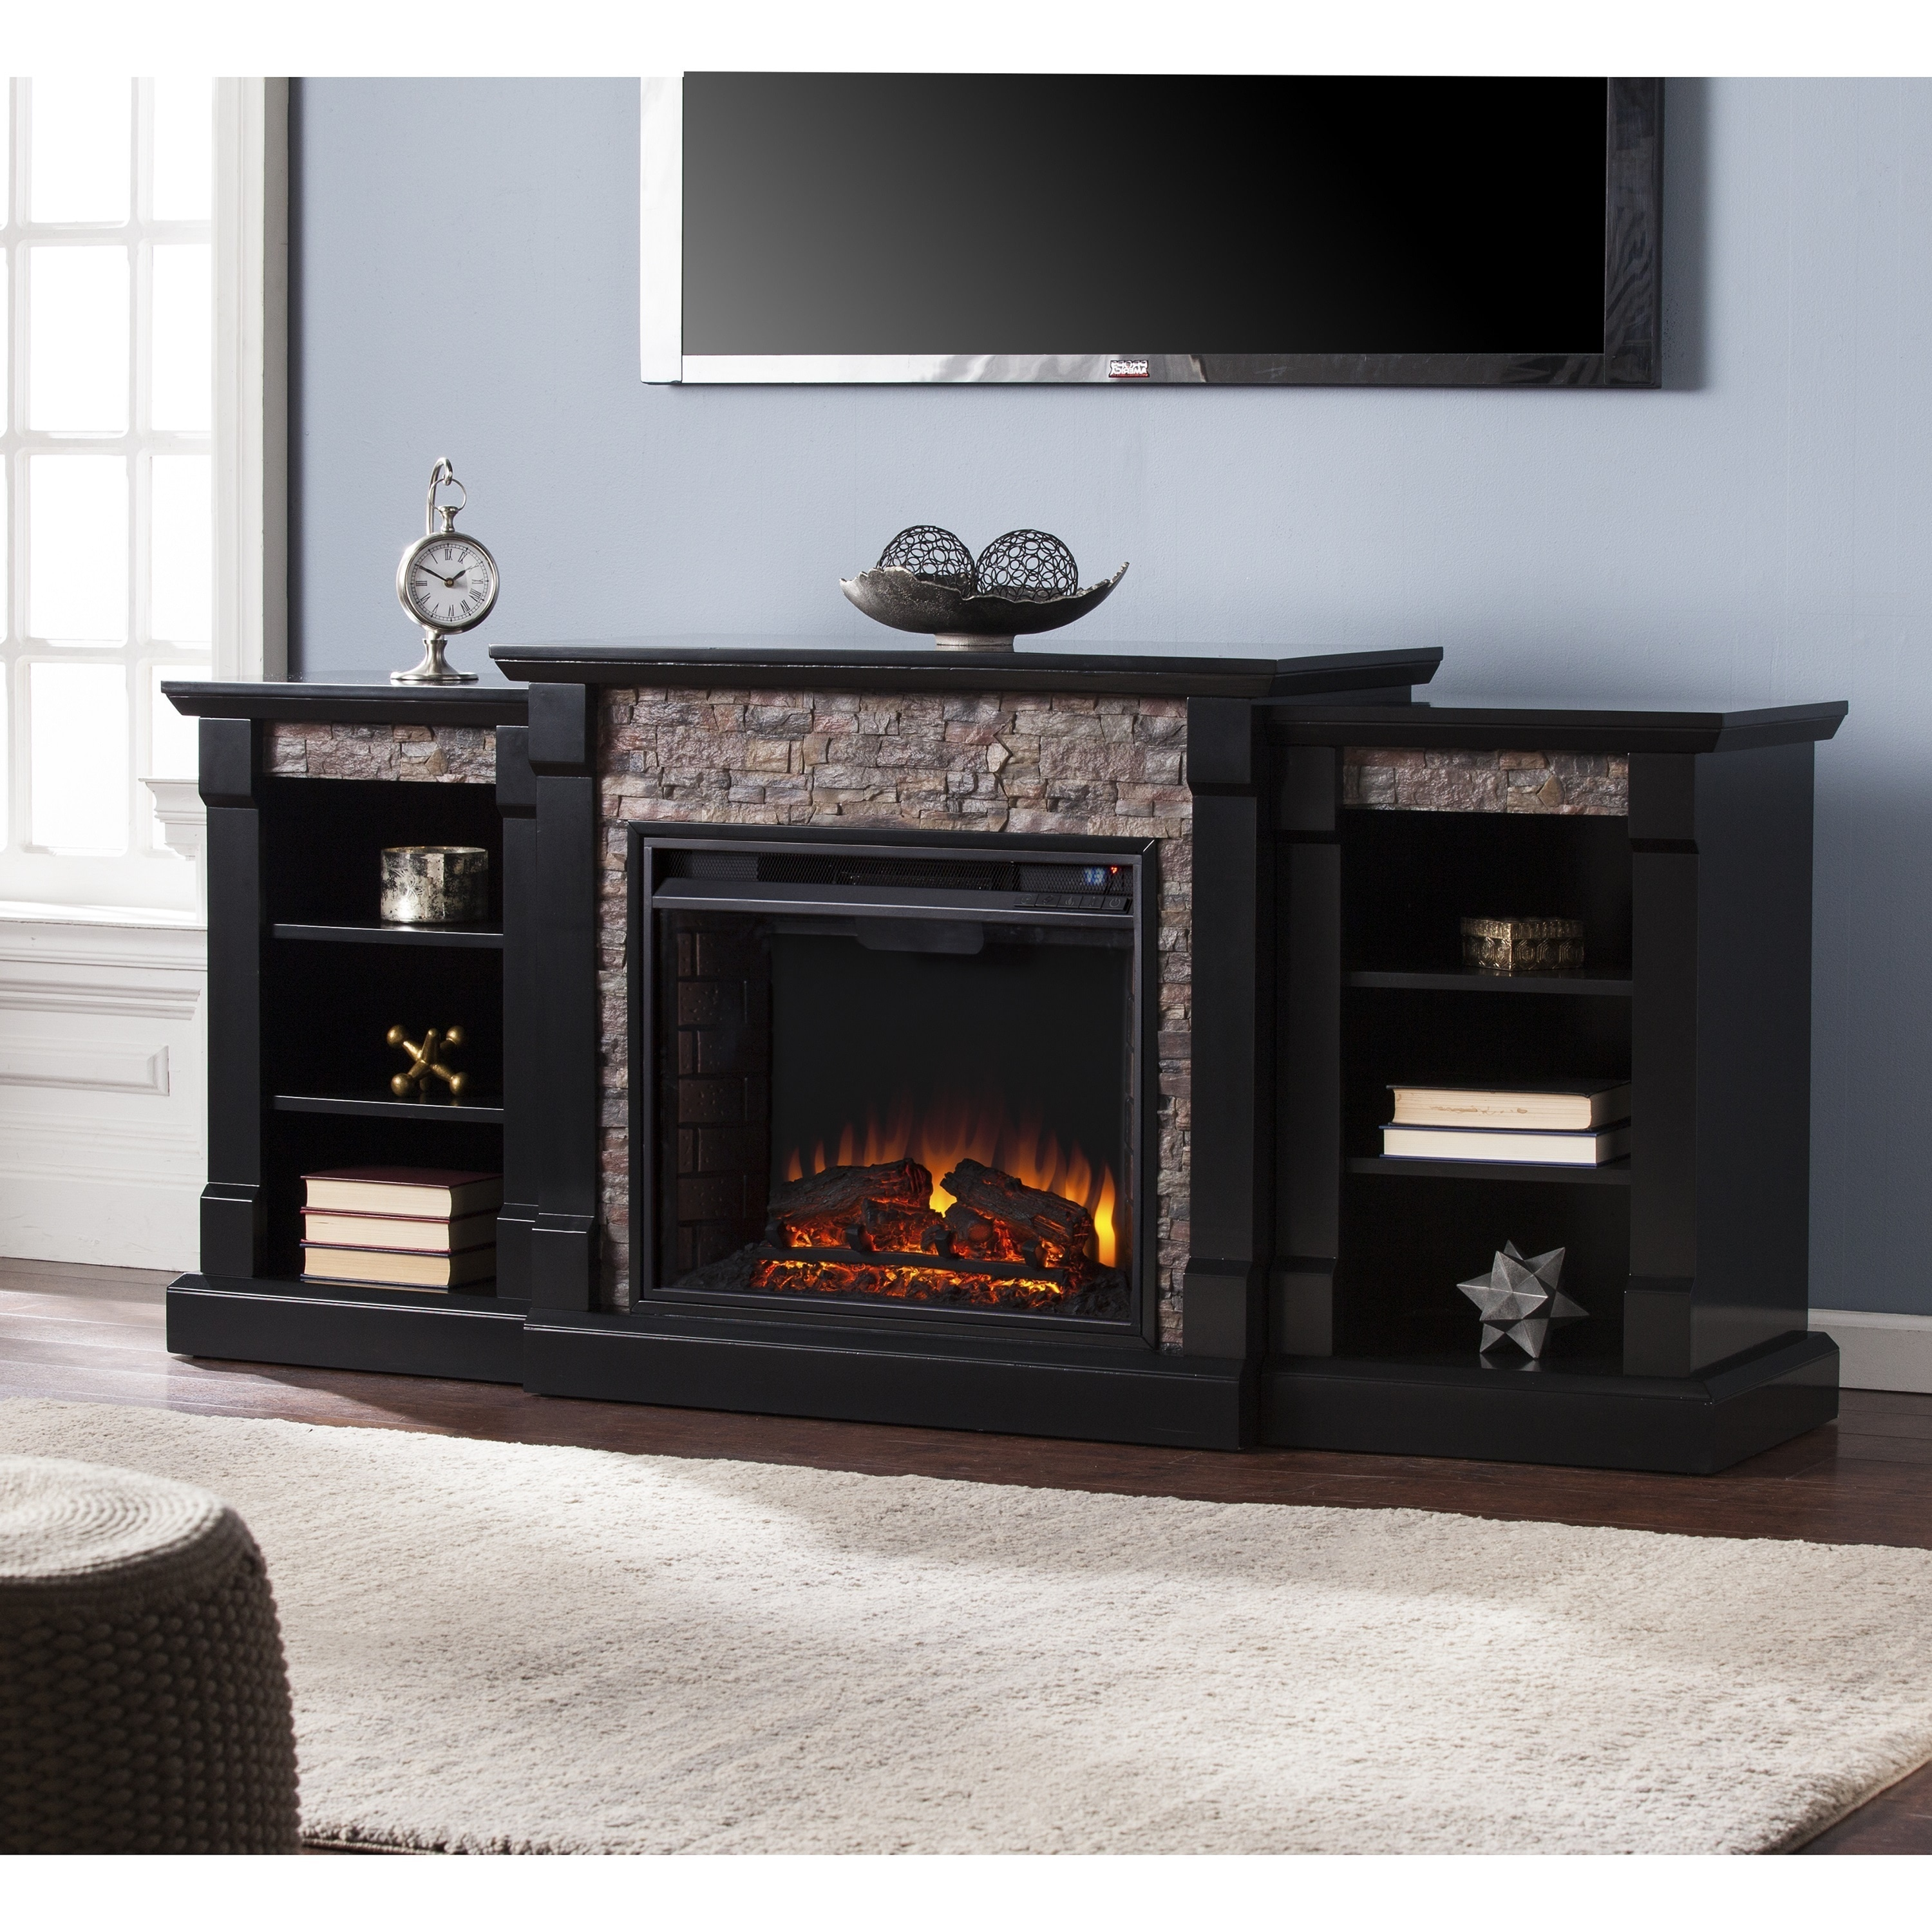 Fire Stones For Fireplace Copper Grove Hay River Black Faux Stone Electric Fireplace With Bookcases